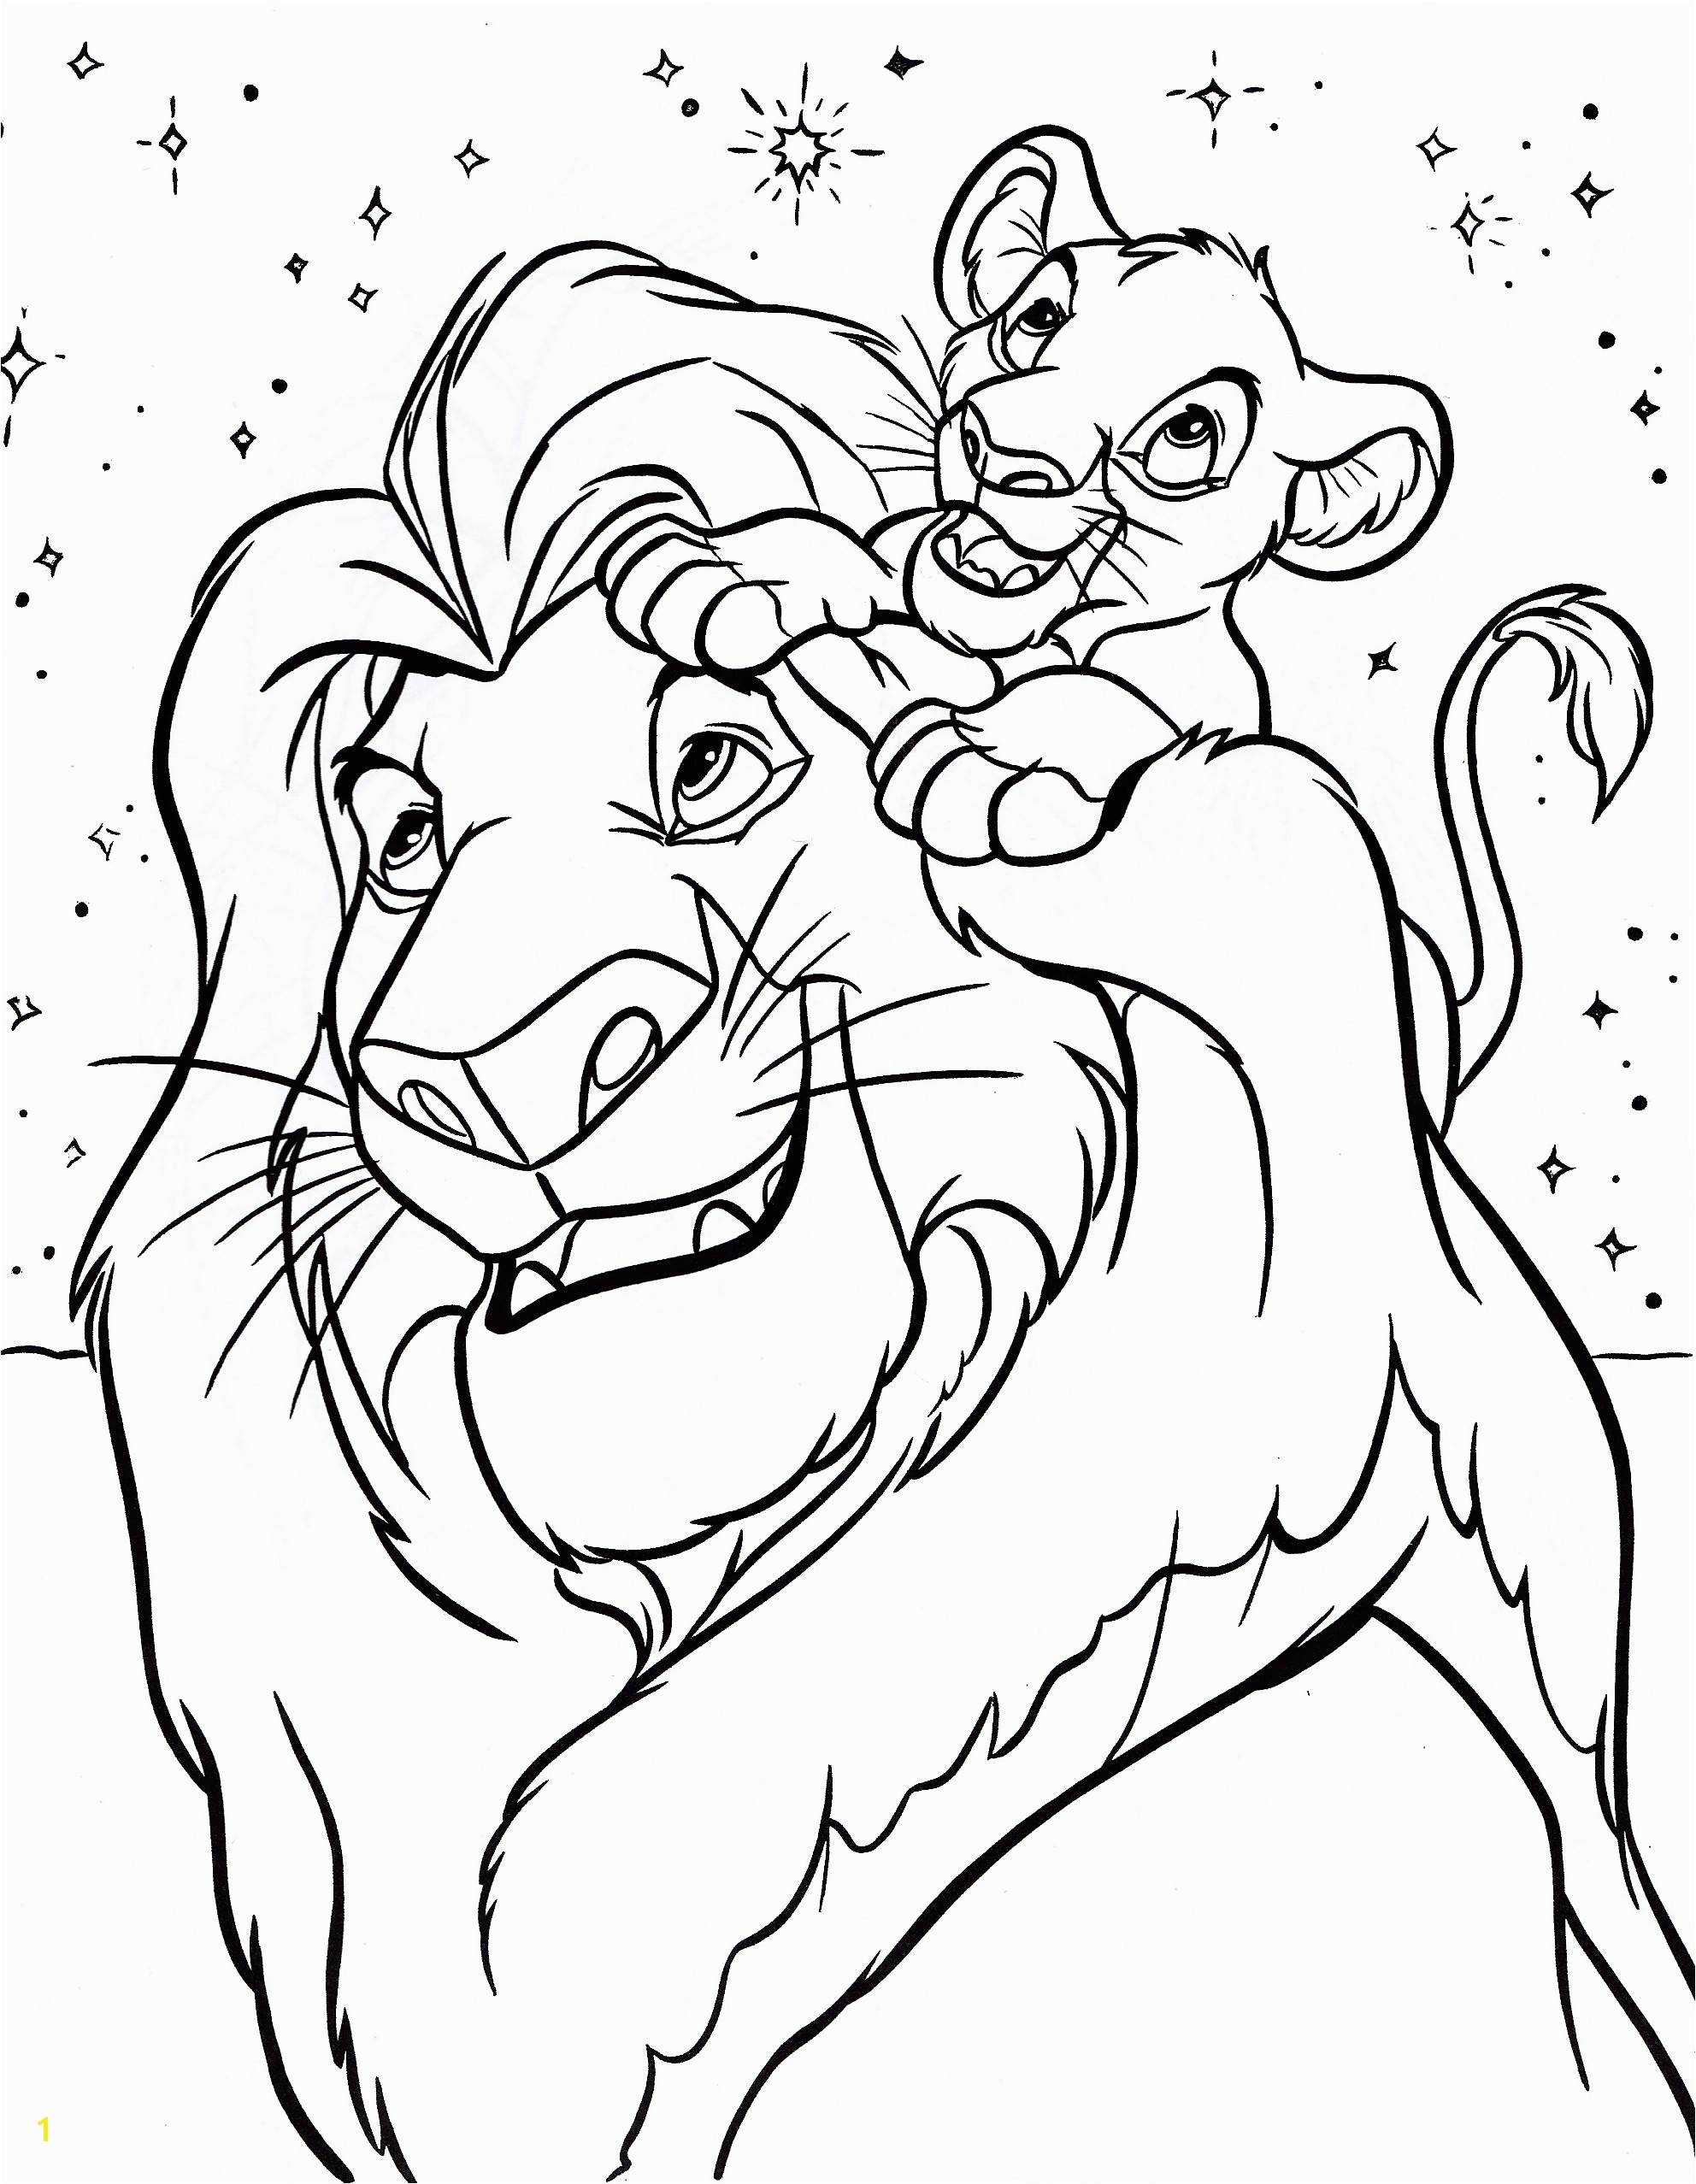 Disney Printable Coloring Pages Disney Printable Coloring Pages 91 with Disney Printable Coloring